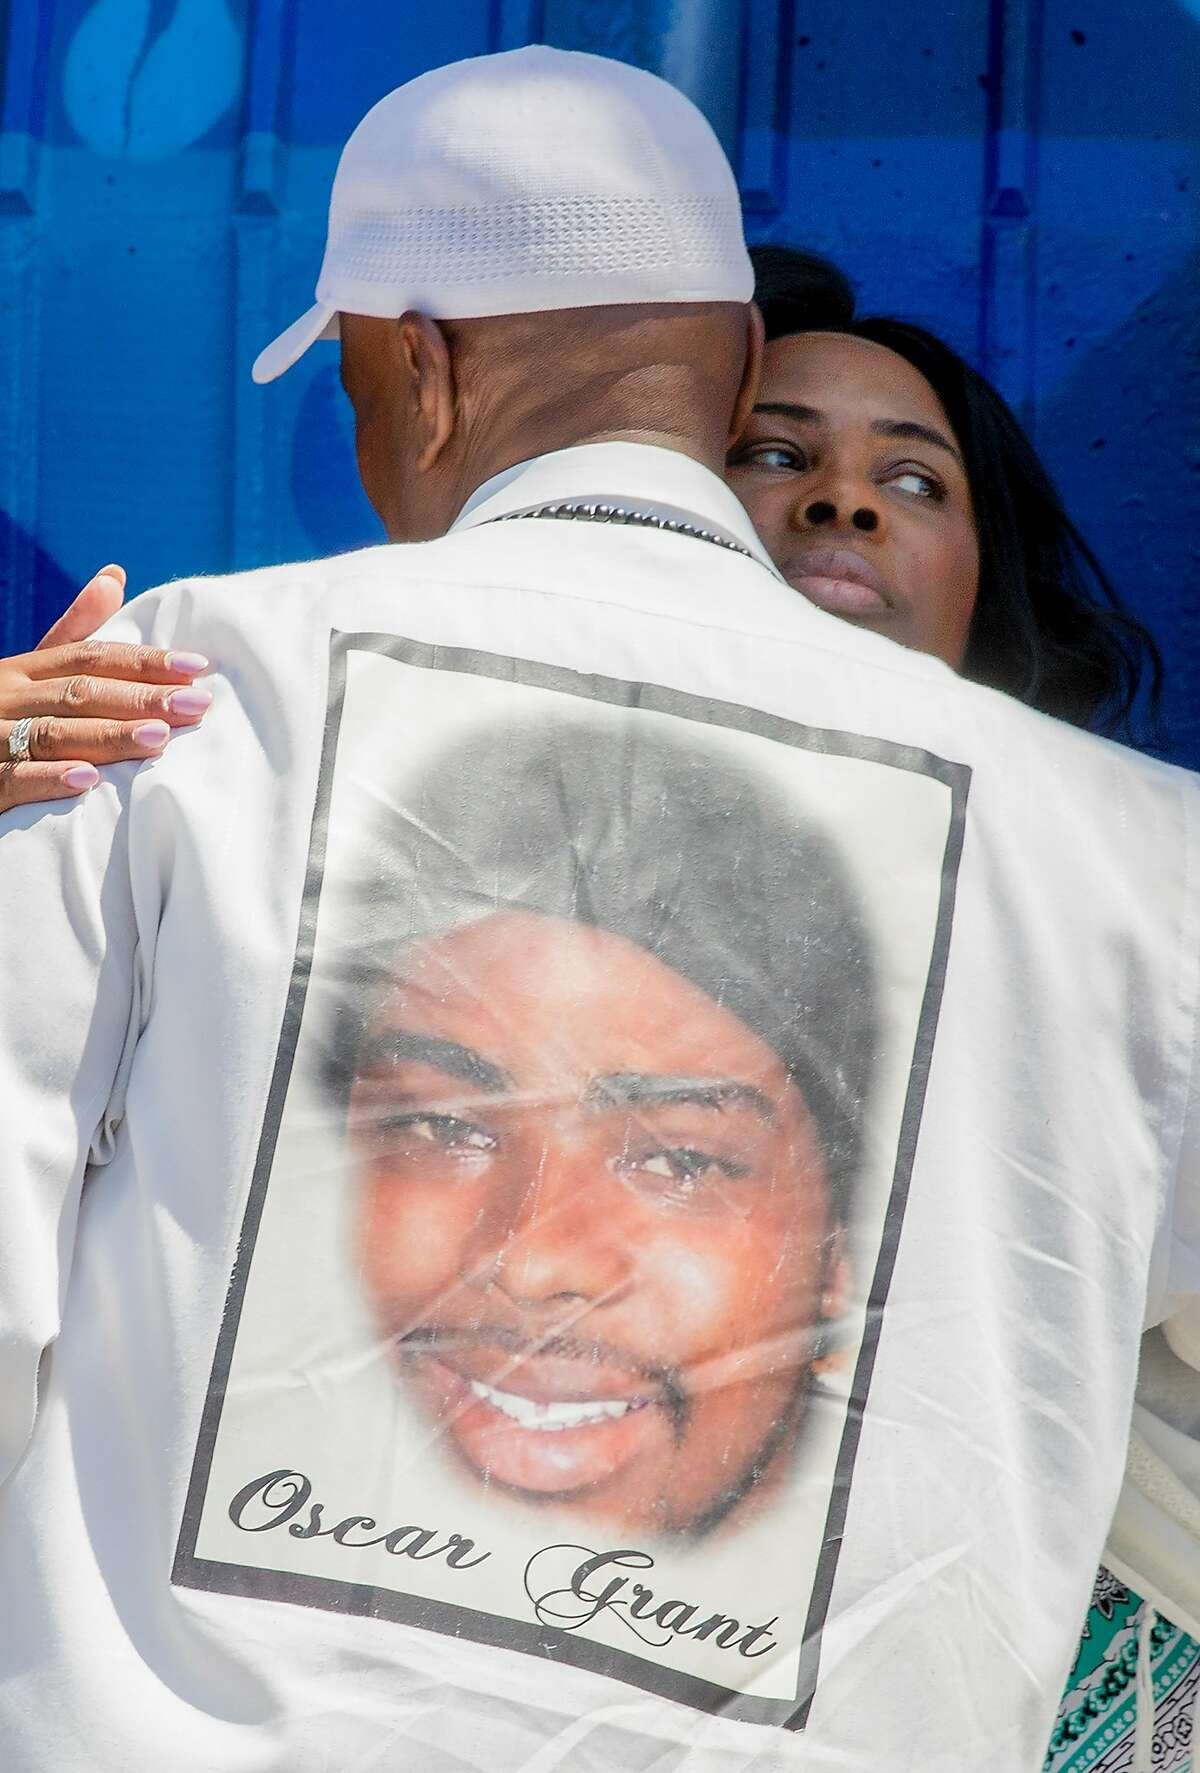 Wanda Johnson, mother of the late Oscar Grant, greets Oscar's uncle Bobby Johnson while standing underneath a large mural honoring her son during a mural and street naming unveiling for Oscar Grant at Fruitvale BART Station in Oakland, Calif. Saturday, June 8, 2019.